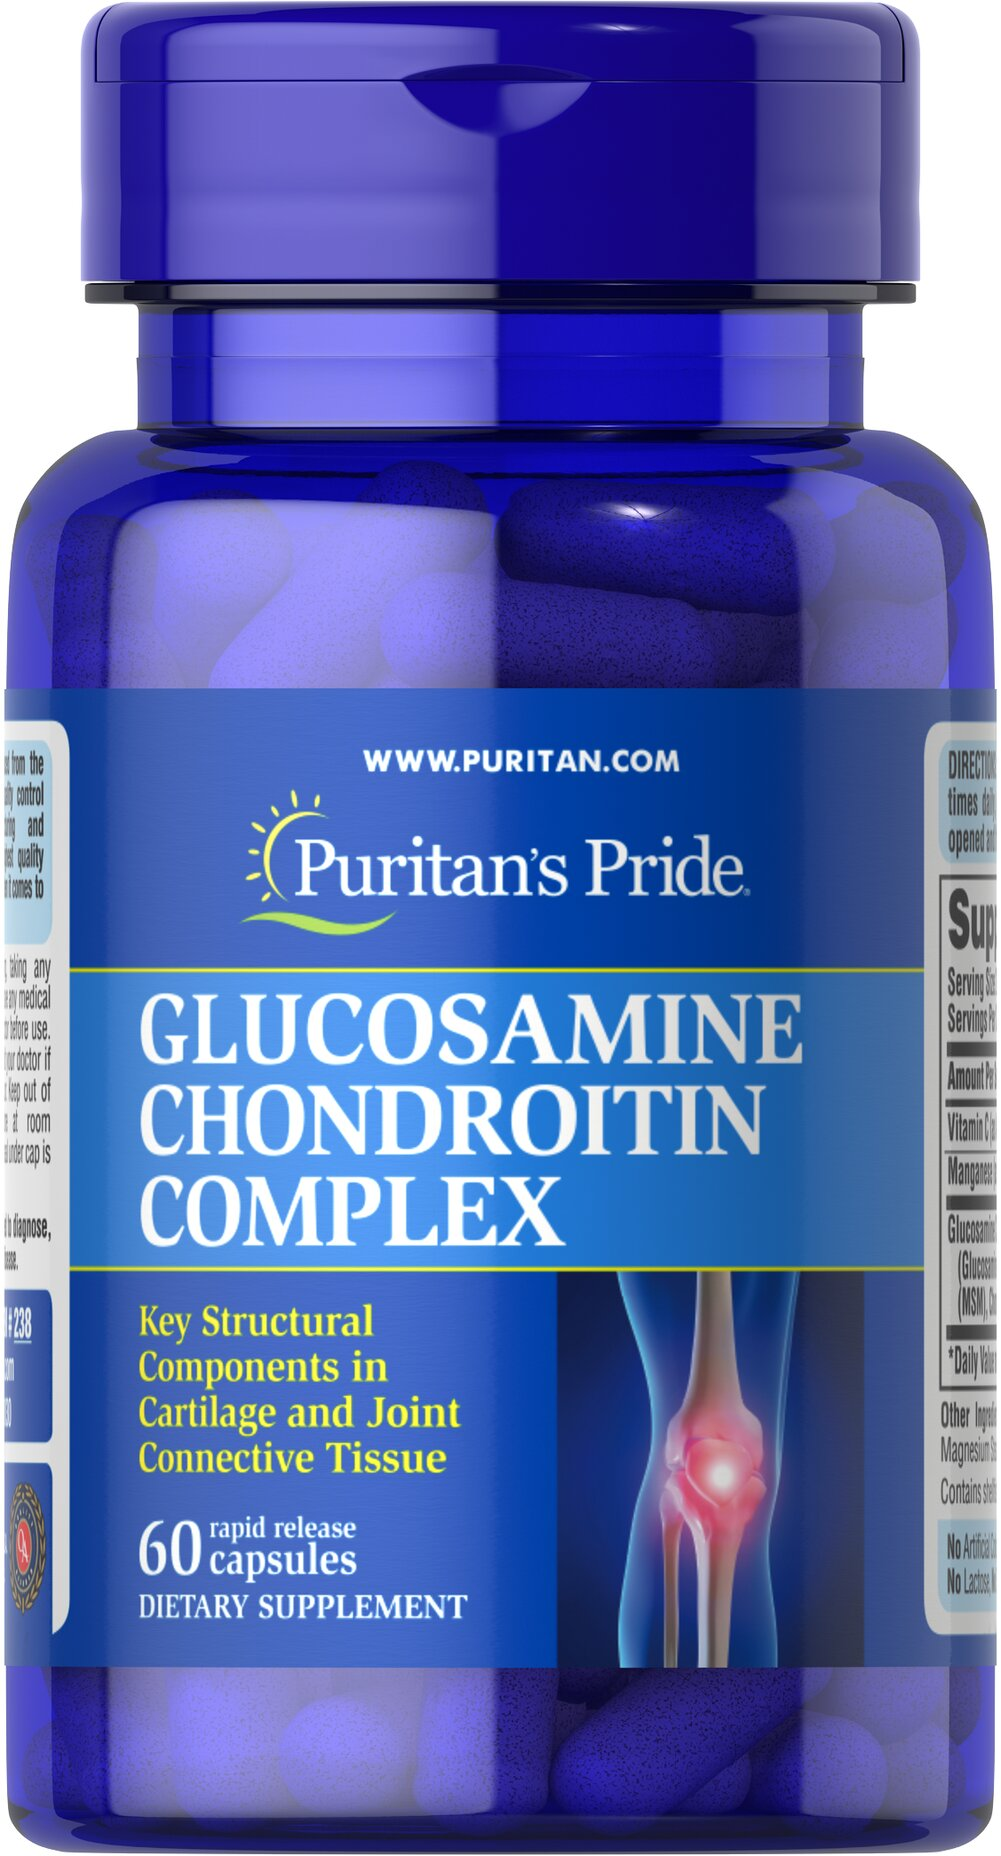 Glucosamine Chondroitin Complex Thumbnail Alternate Bottle View